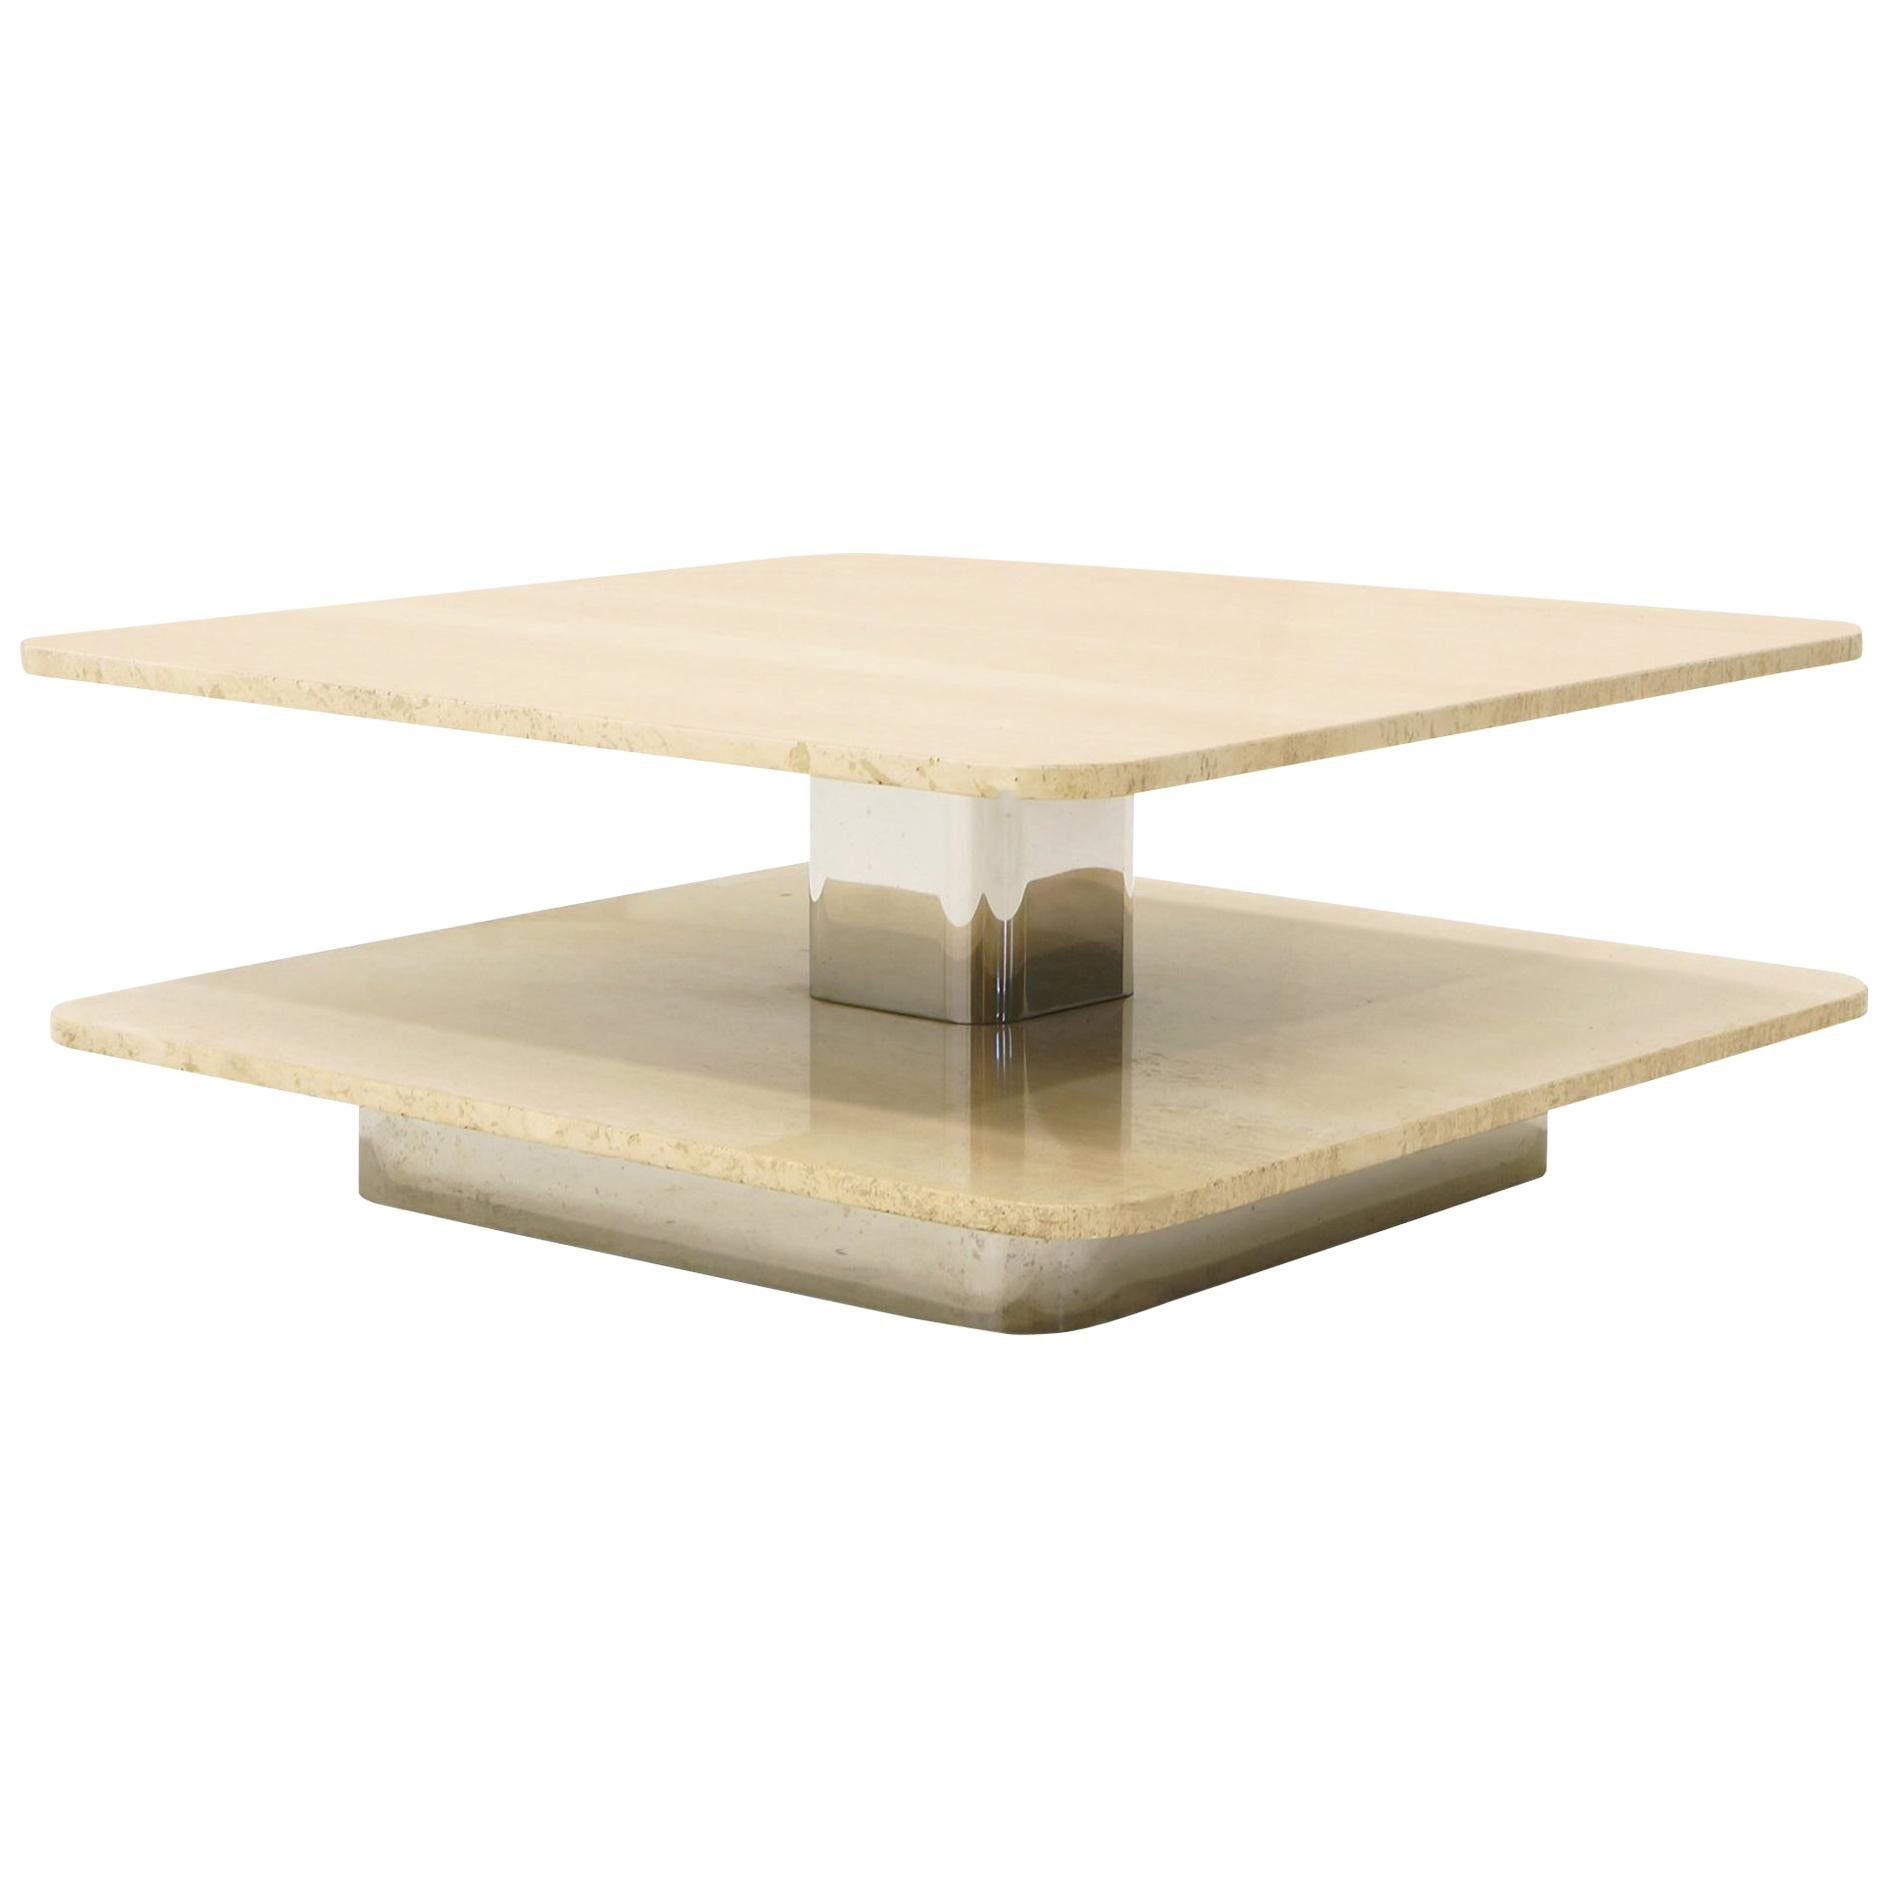 Coffee Table in the Style of Harvey Probber, Two-Tier Square Travertine Tops